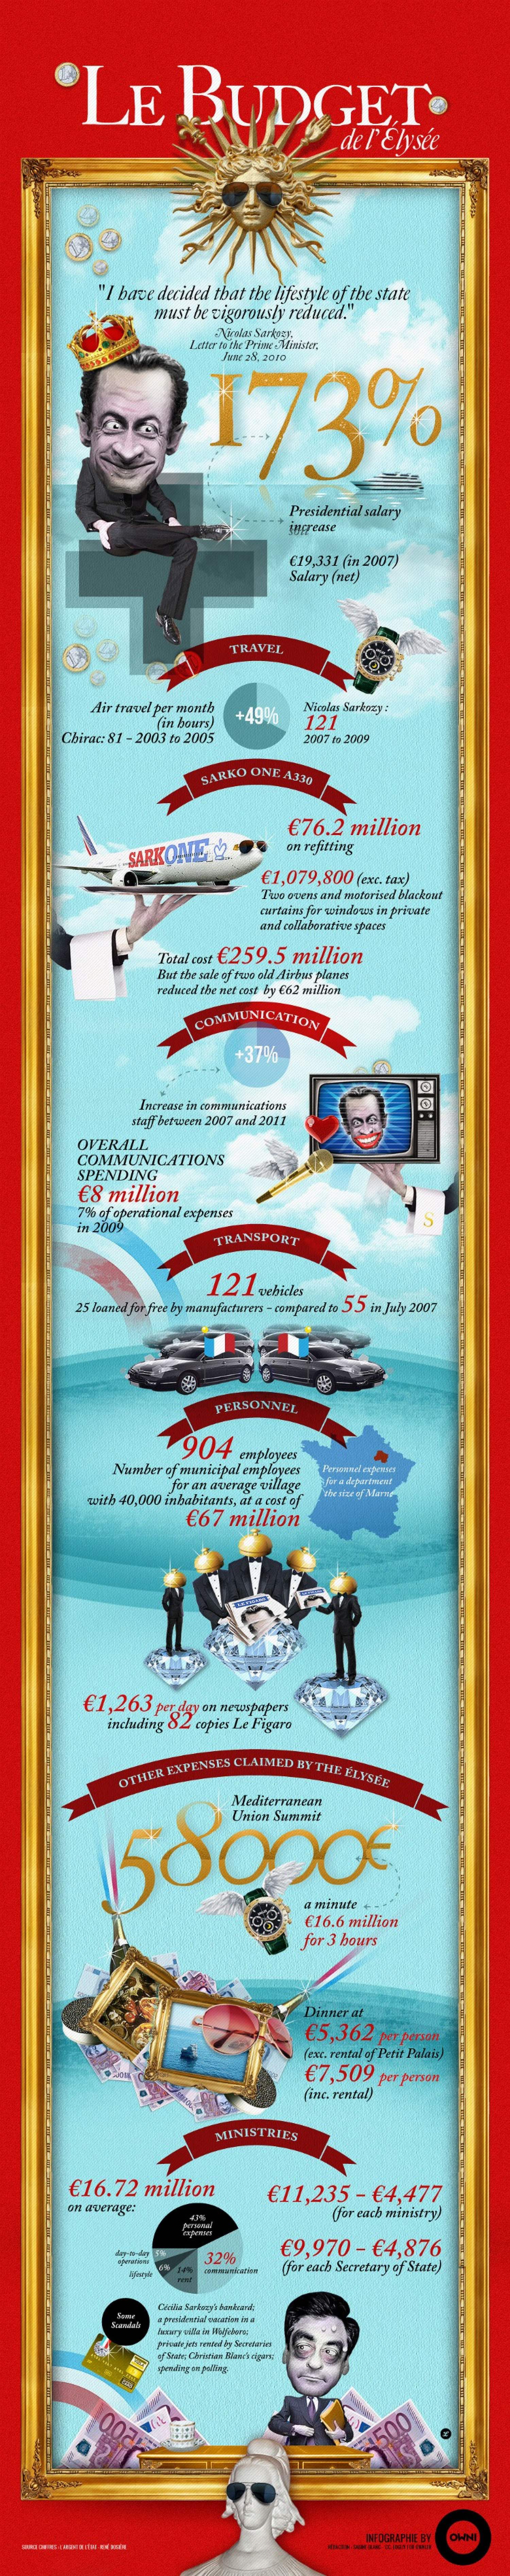 Le Budget Infographic